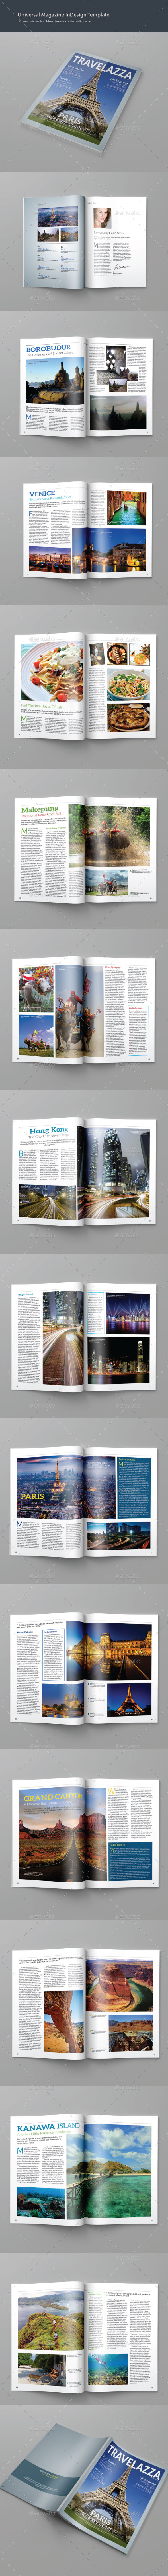 GraphicRiver Travelazza Magazine 9870031